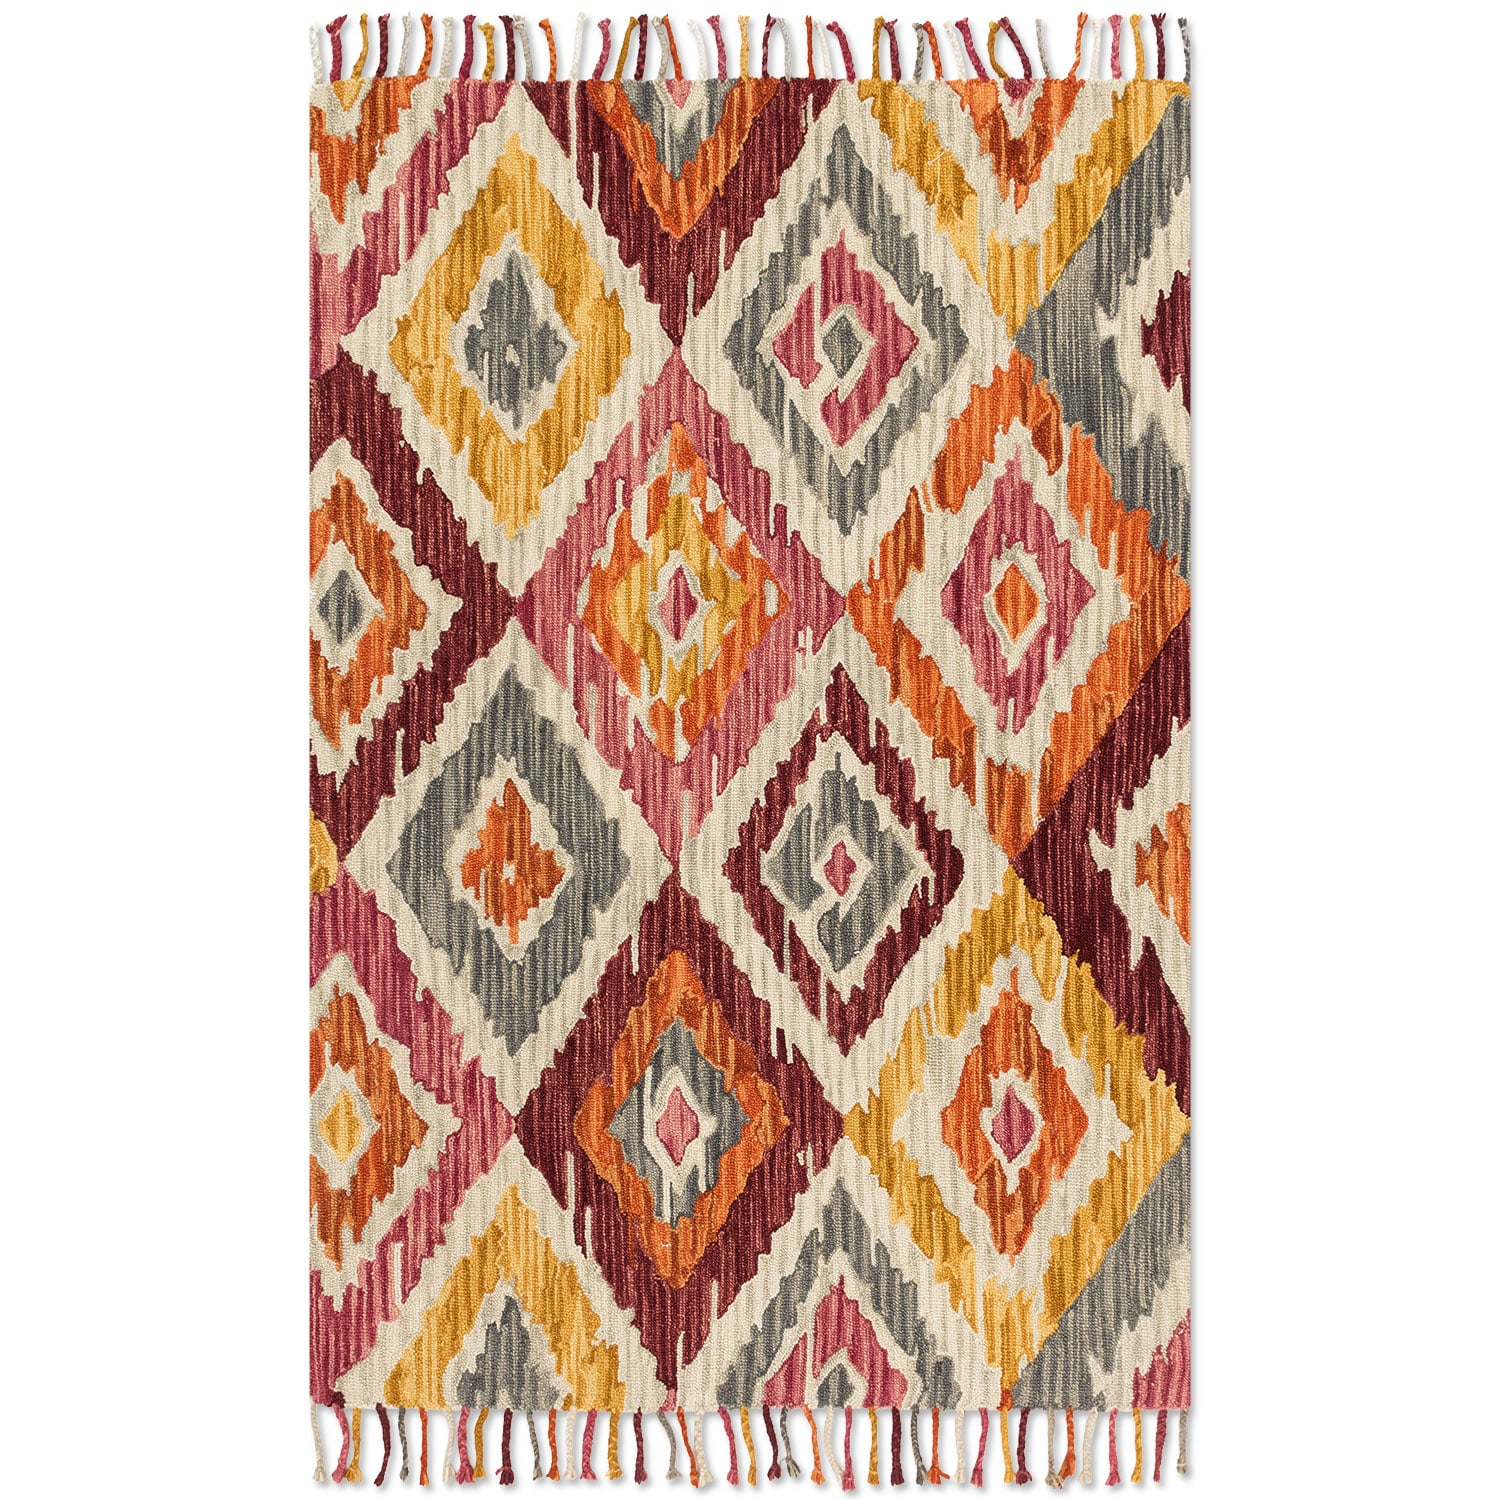 Rugs - Brushstroke 5' x 8' Rug - Silver Sunset